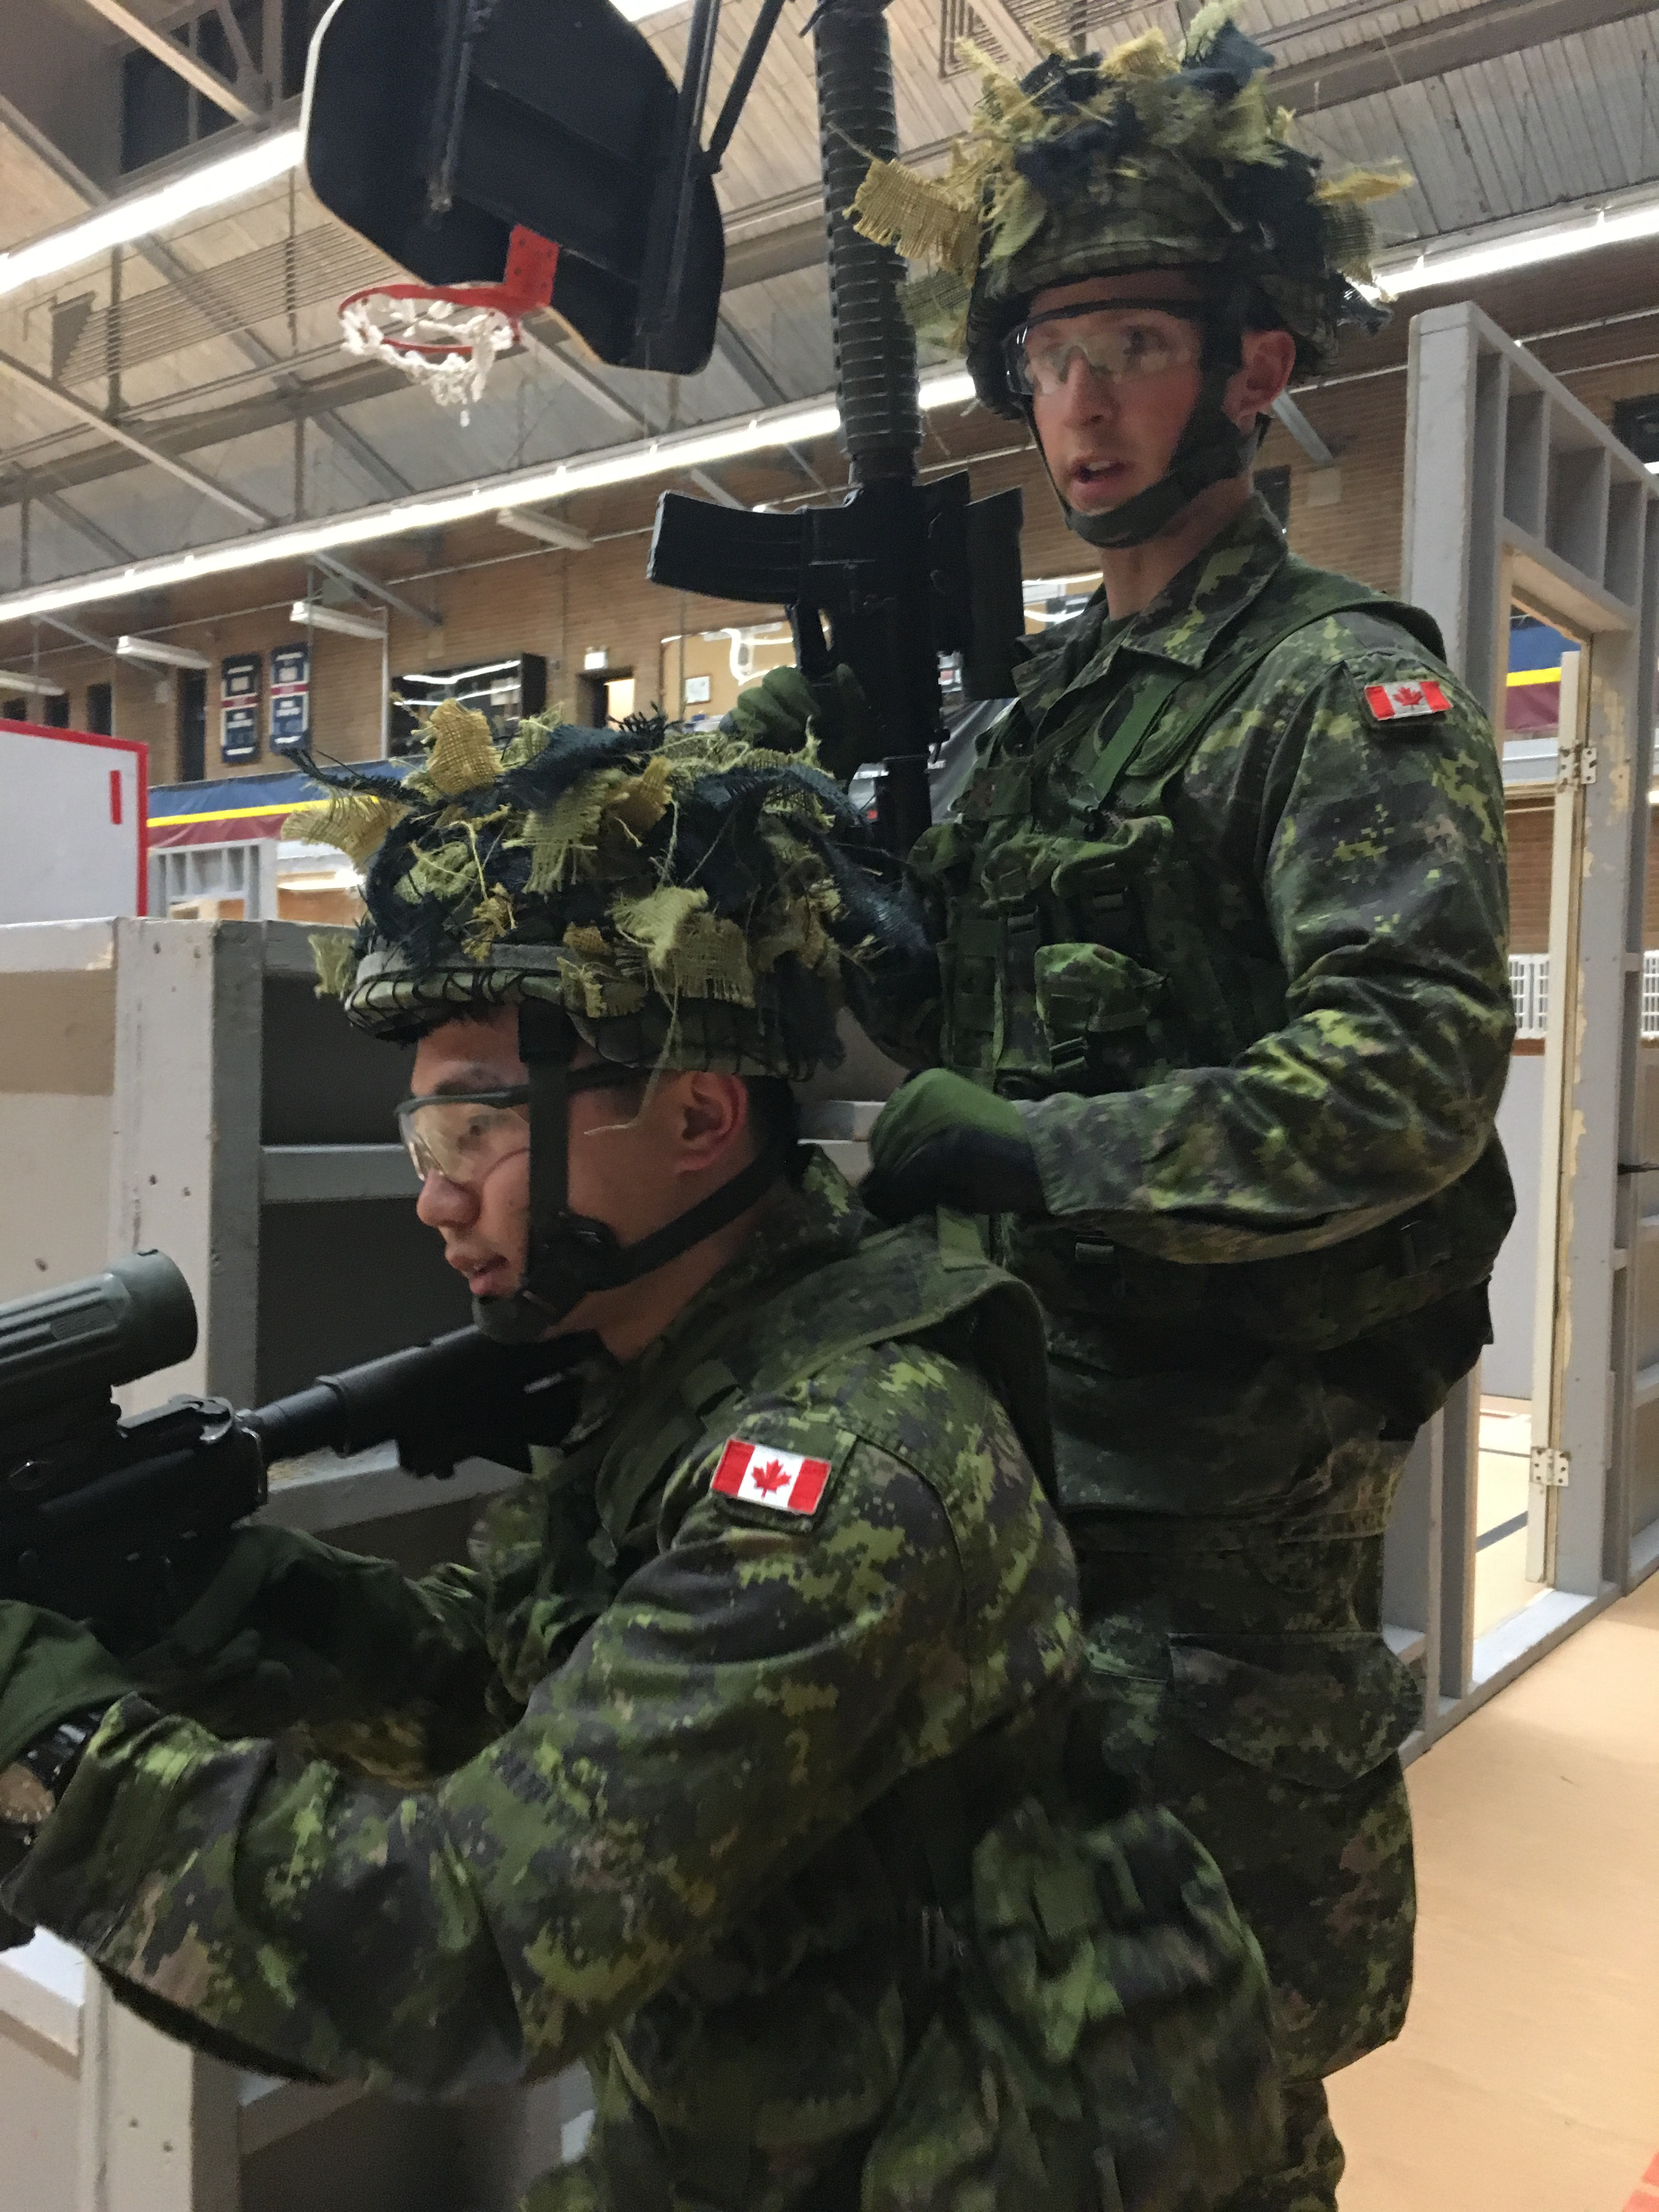 Second Lieutenant Rui Hao Wang, taking point with another soldier during Close Quarter Battle (CQB) training during part of the Regimental Indoctrination Course at the Royal Montreal Regiment (RMR) in March 2016.